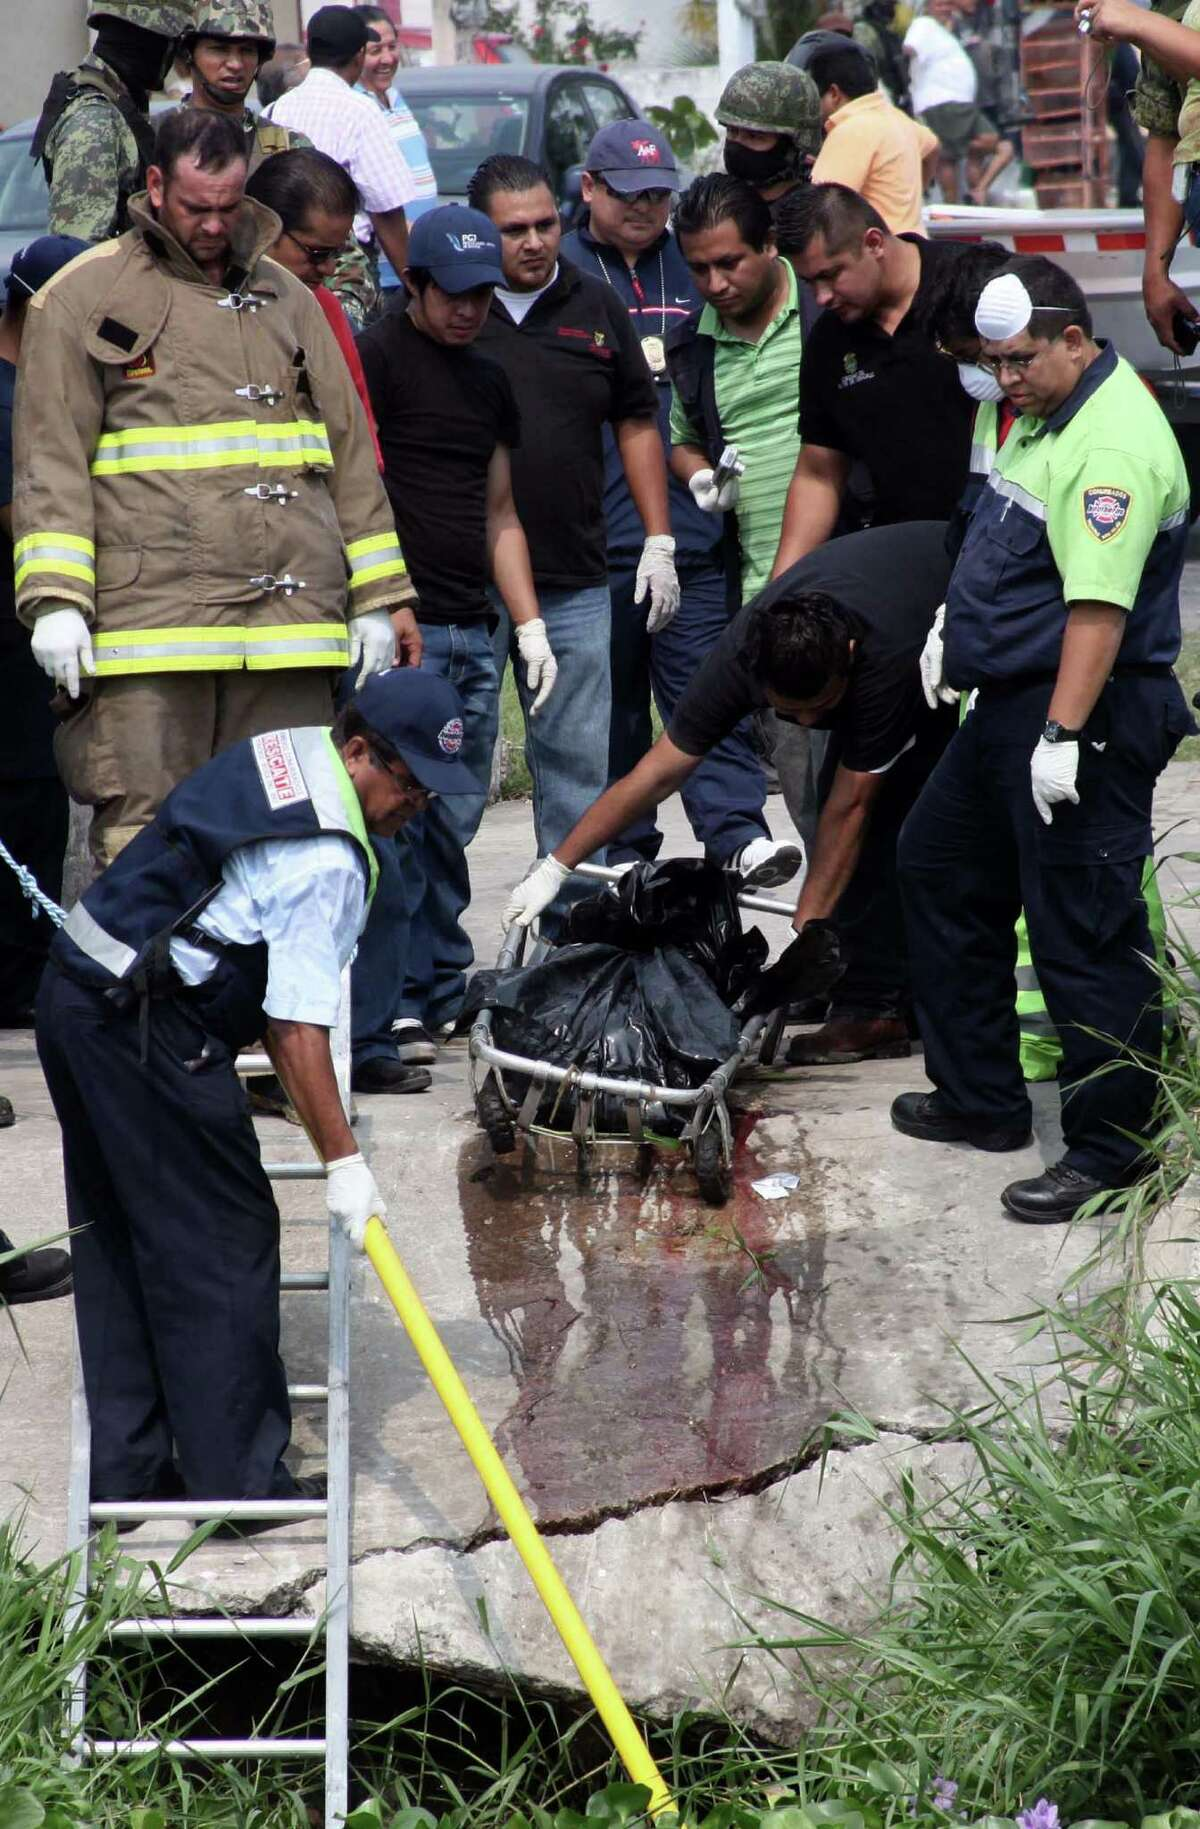 Firefighters and rescuers retrieve plastic bags that held the dismembered corpses of two photojournalists who disappeared Wednesday in the Mexican city port of Veracruz.